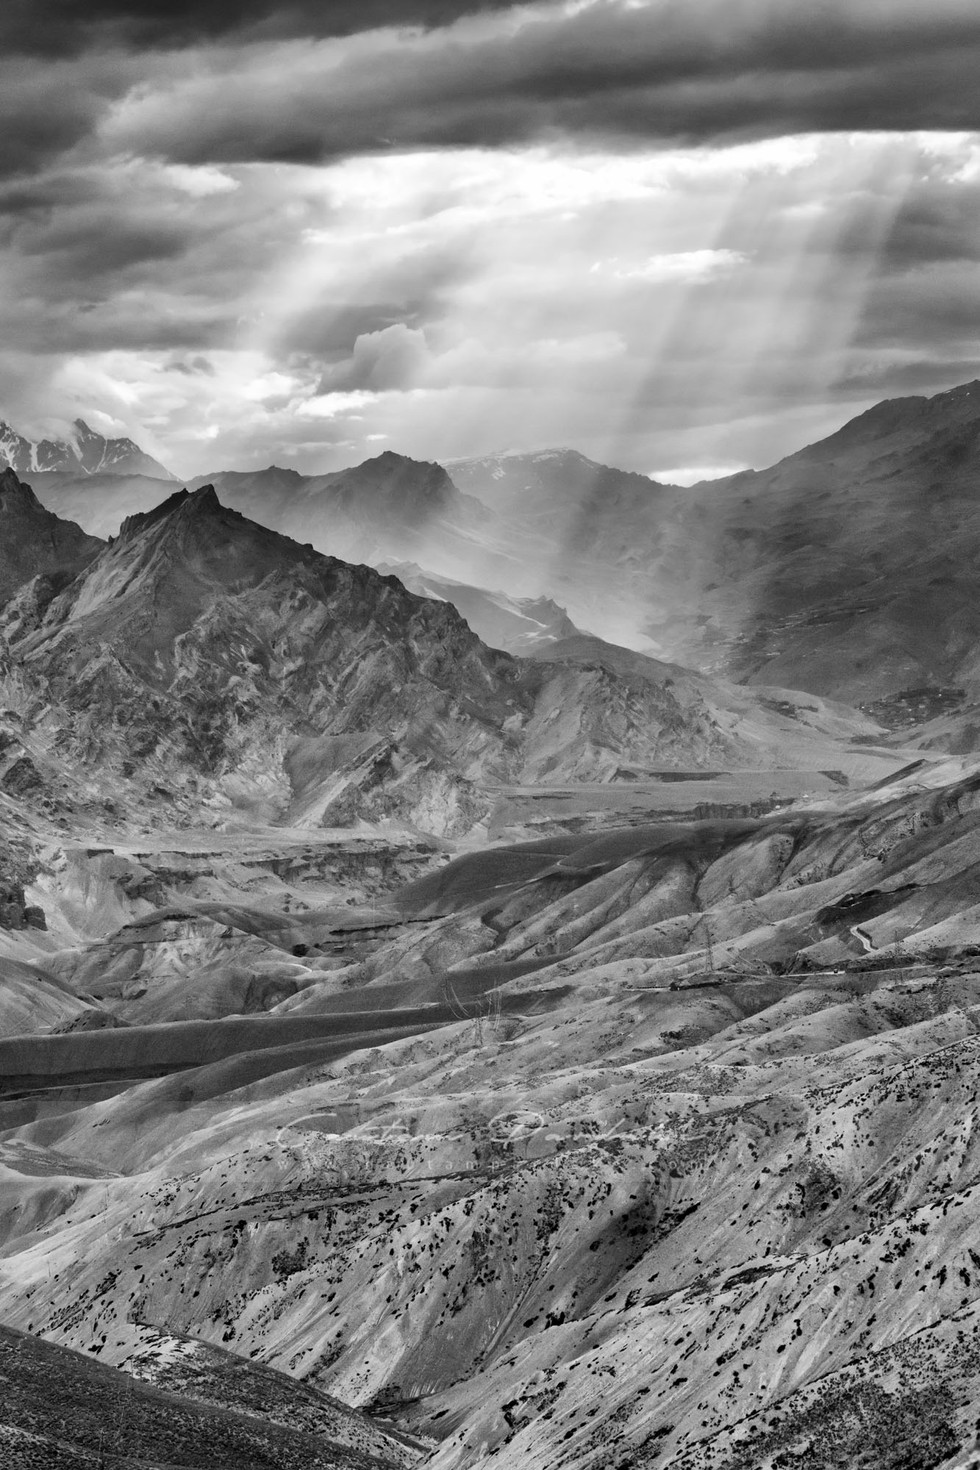 Artistic black and white landscape photo of a break in the clouds in the high Himlayan mountains of Ladakh India